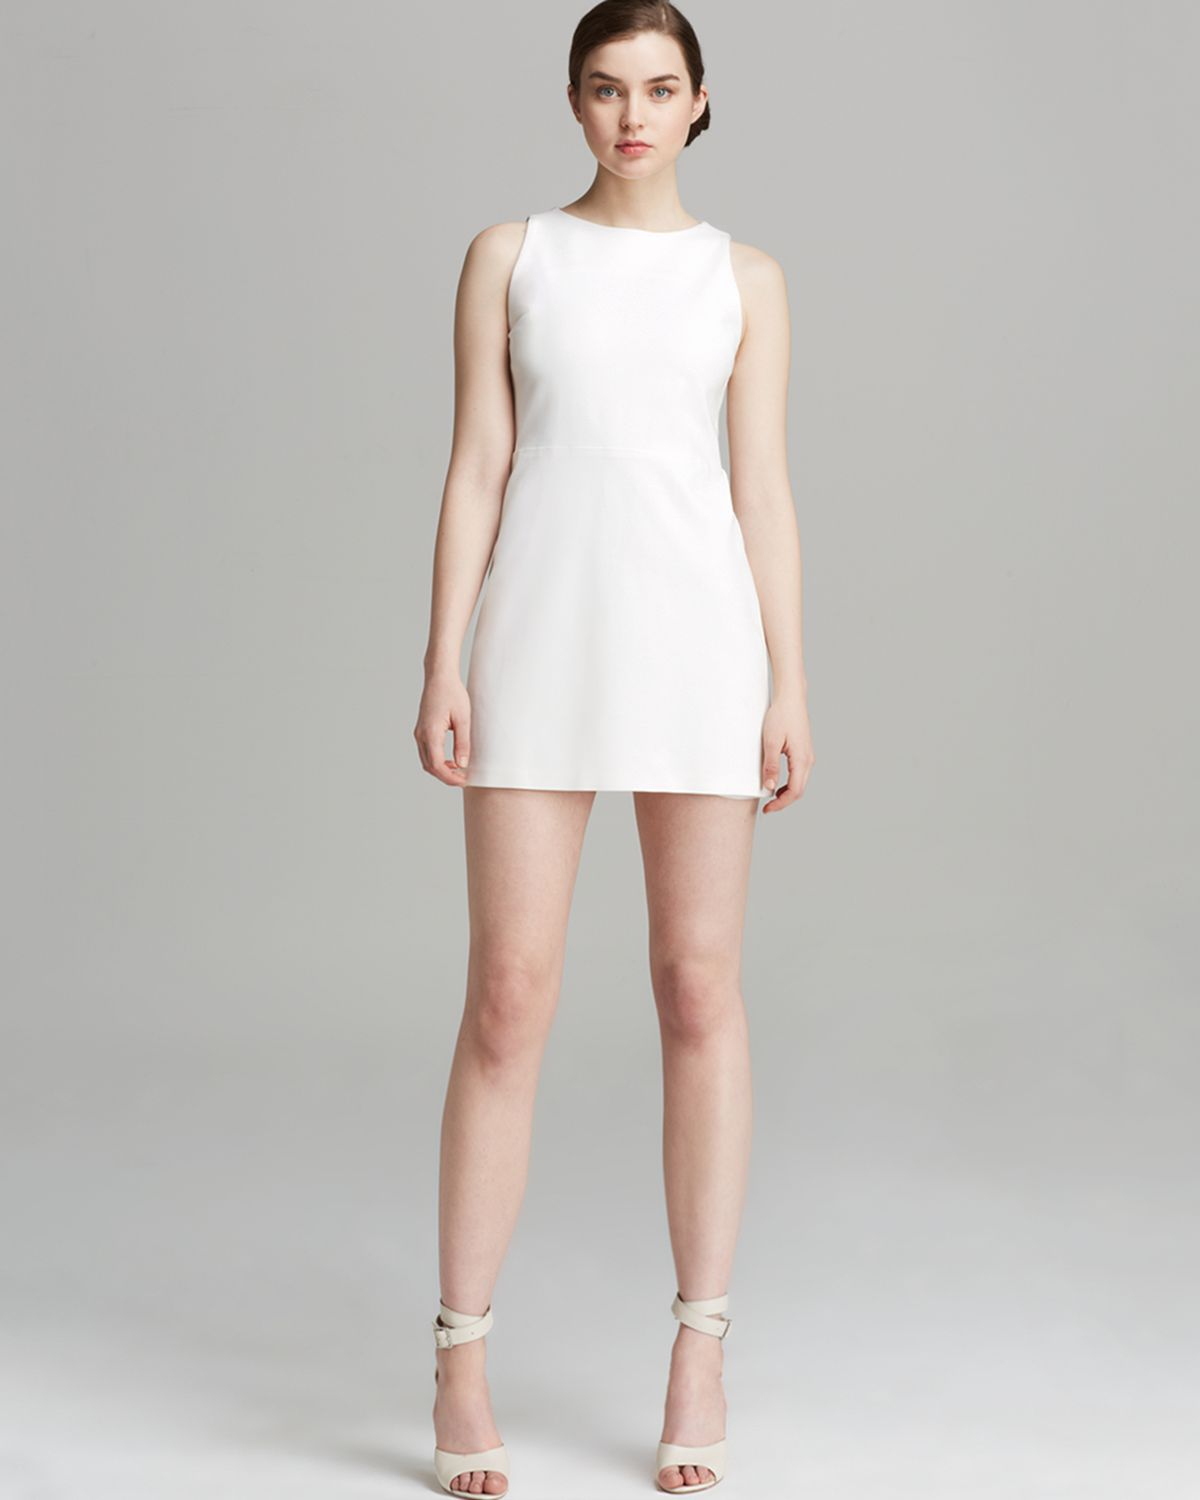 ebe1d22b4d7 Alice + Olivia Alice Olivia Dress A Line in White - Lyst